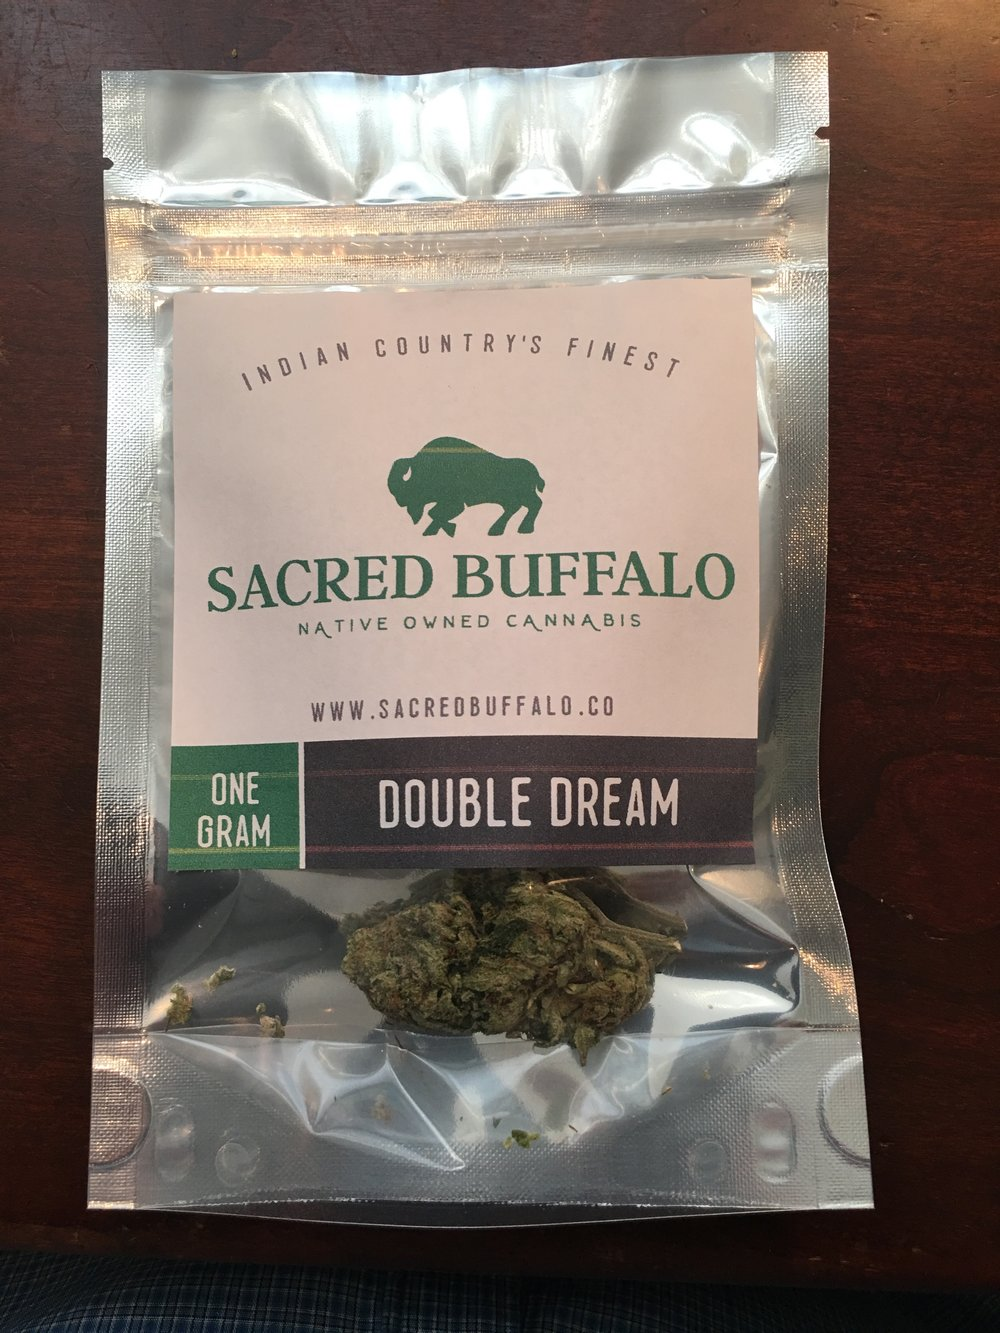 Sacred Buffalo - Double dream - sample 1g photo.jpg